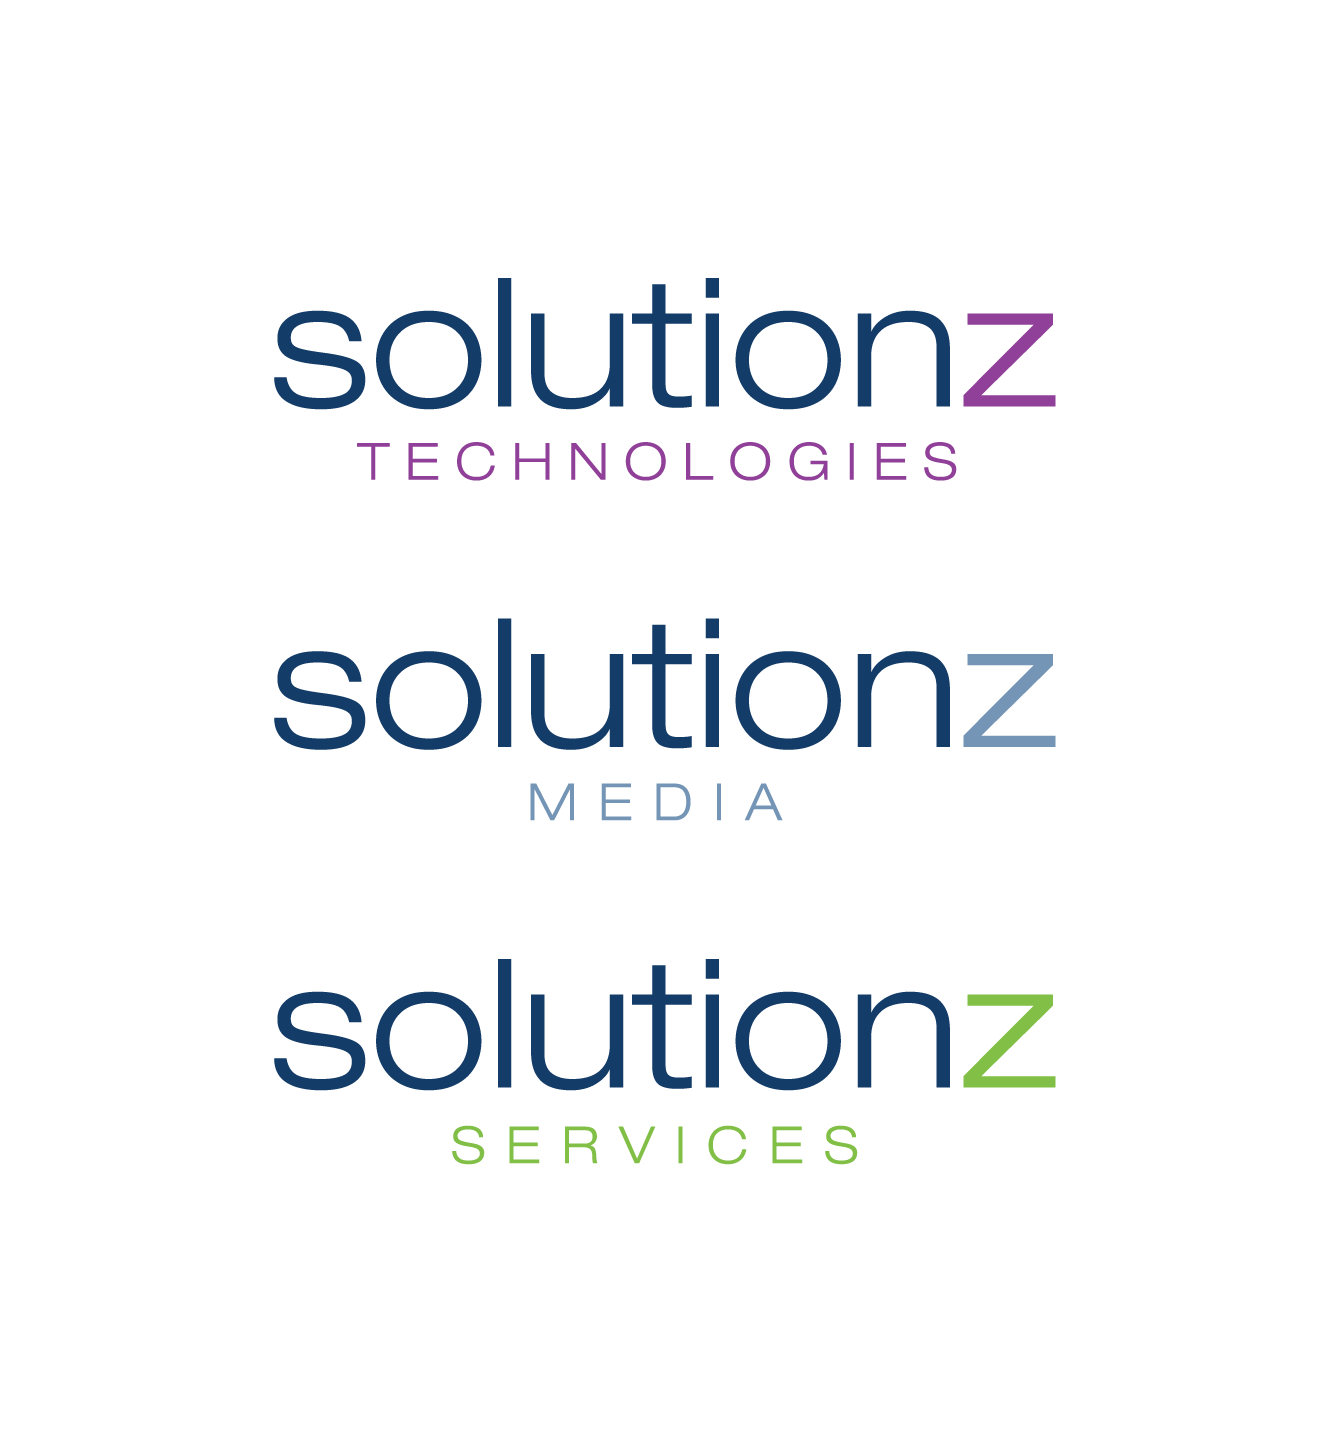 Create a design template for a Solutionz family of logos